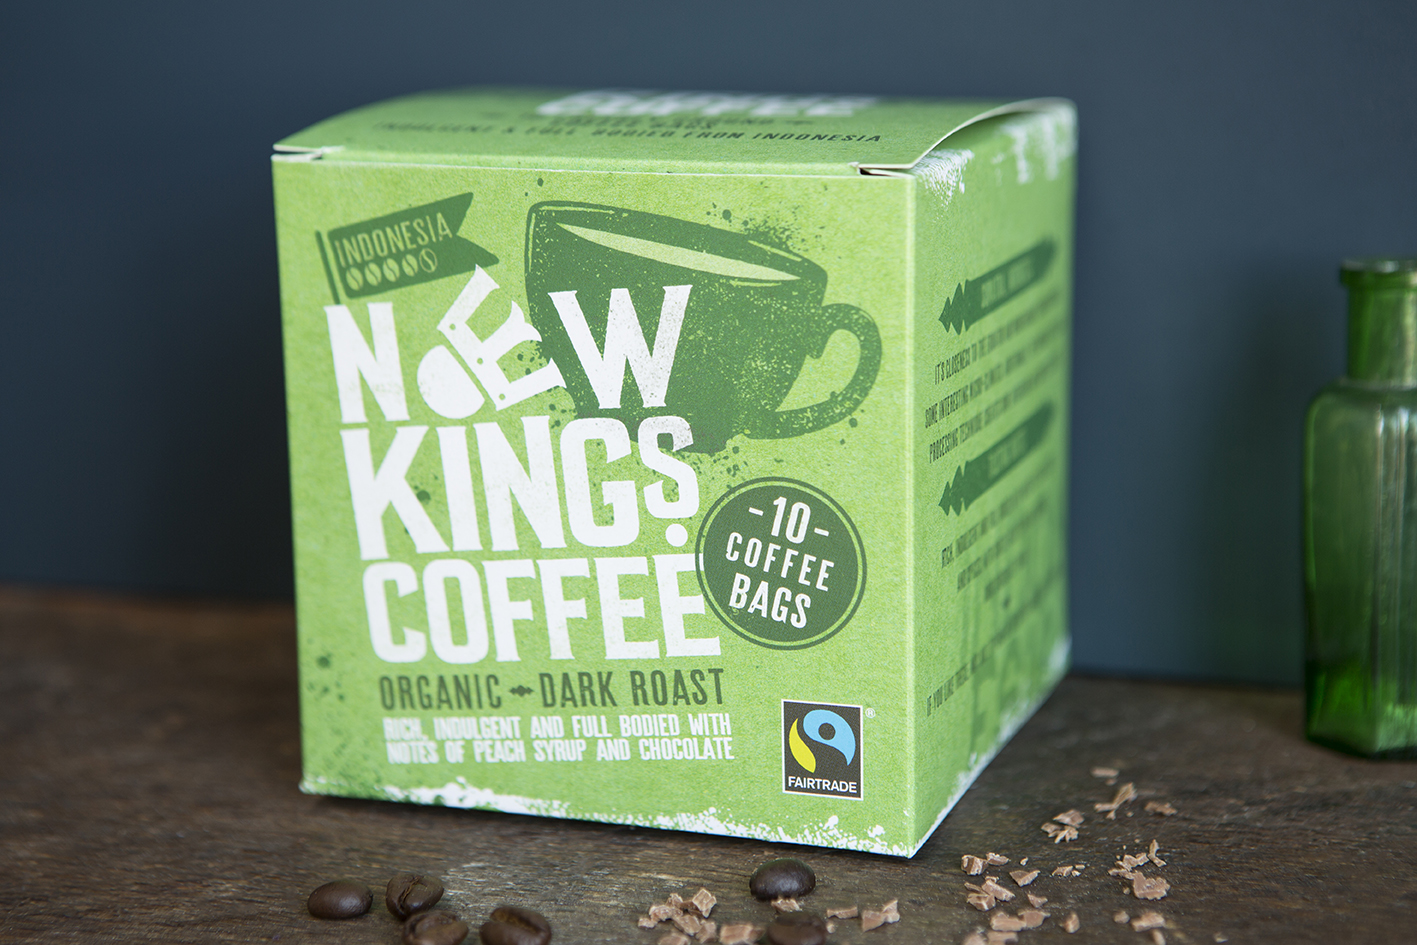 New-Kings-Coffee-Bags-Fairtrade-Organic-Dark-Roast-10.jpg